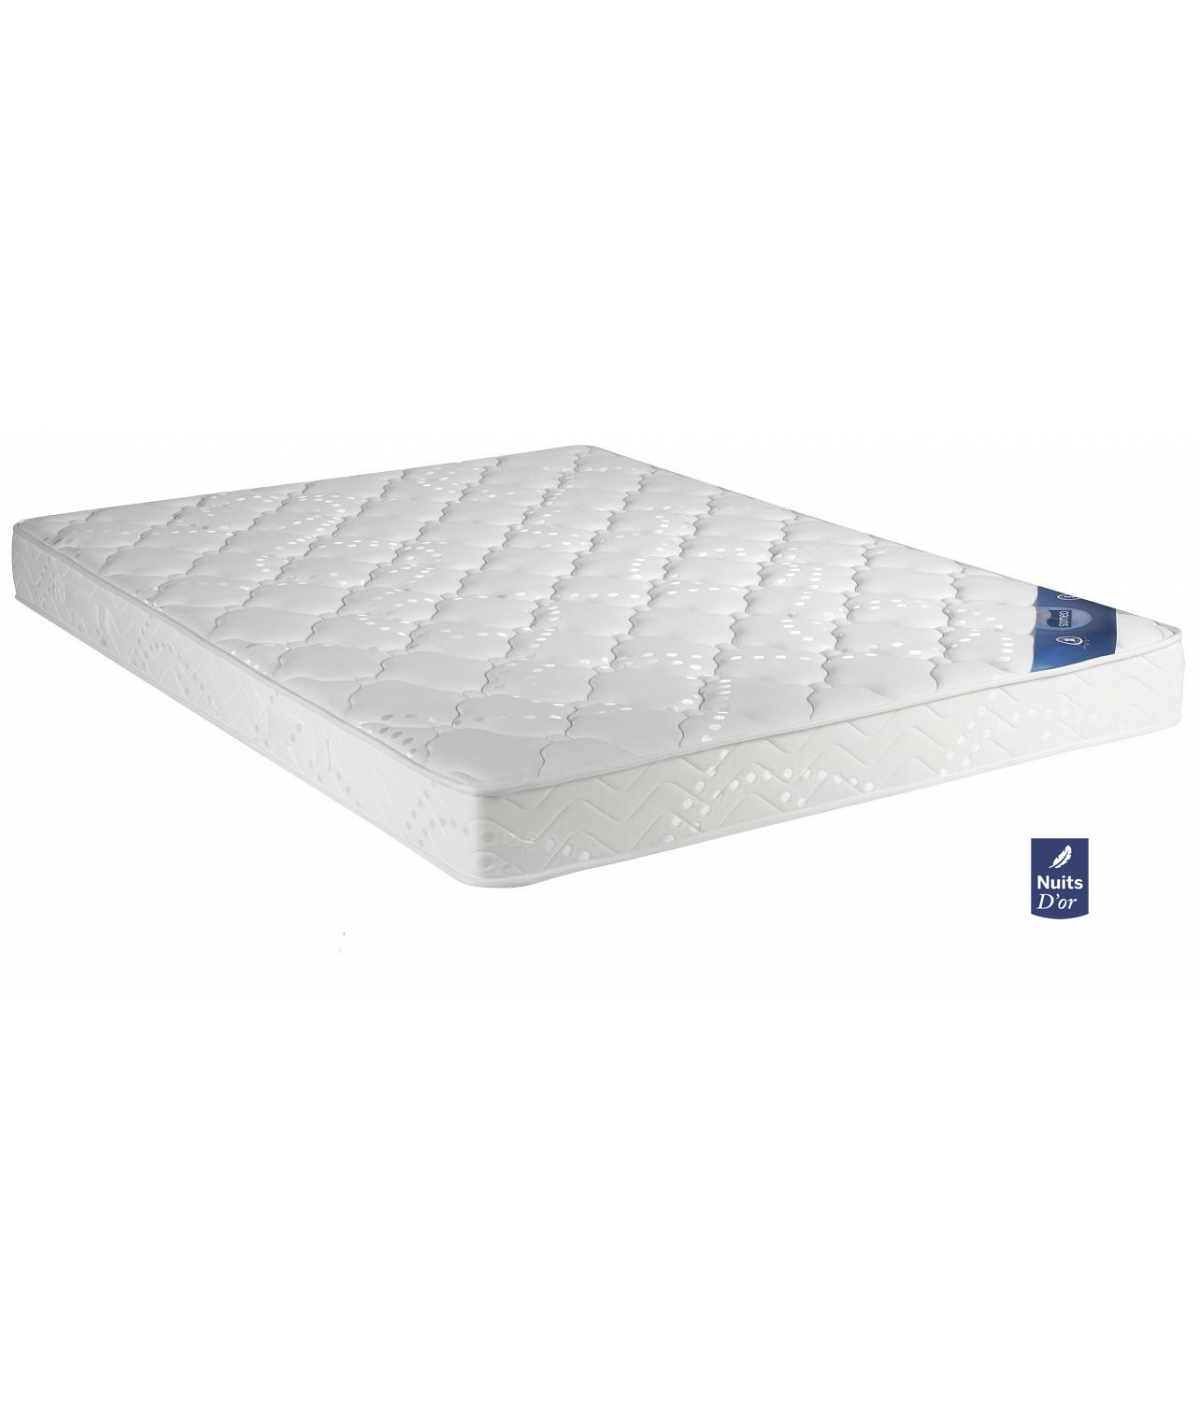 Dream Soft Mattress 100x200 Density 30 Kg   m3 - Height 18 Cm - Very Firm de476d080ea1